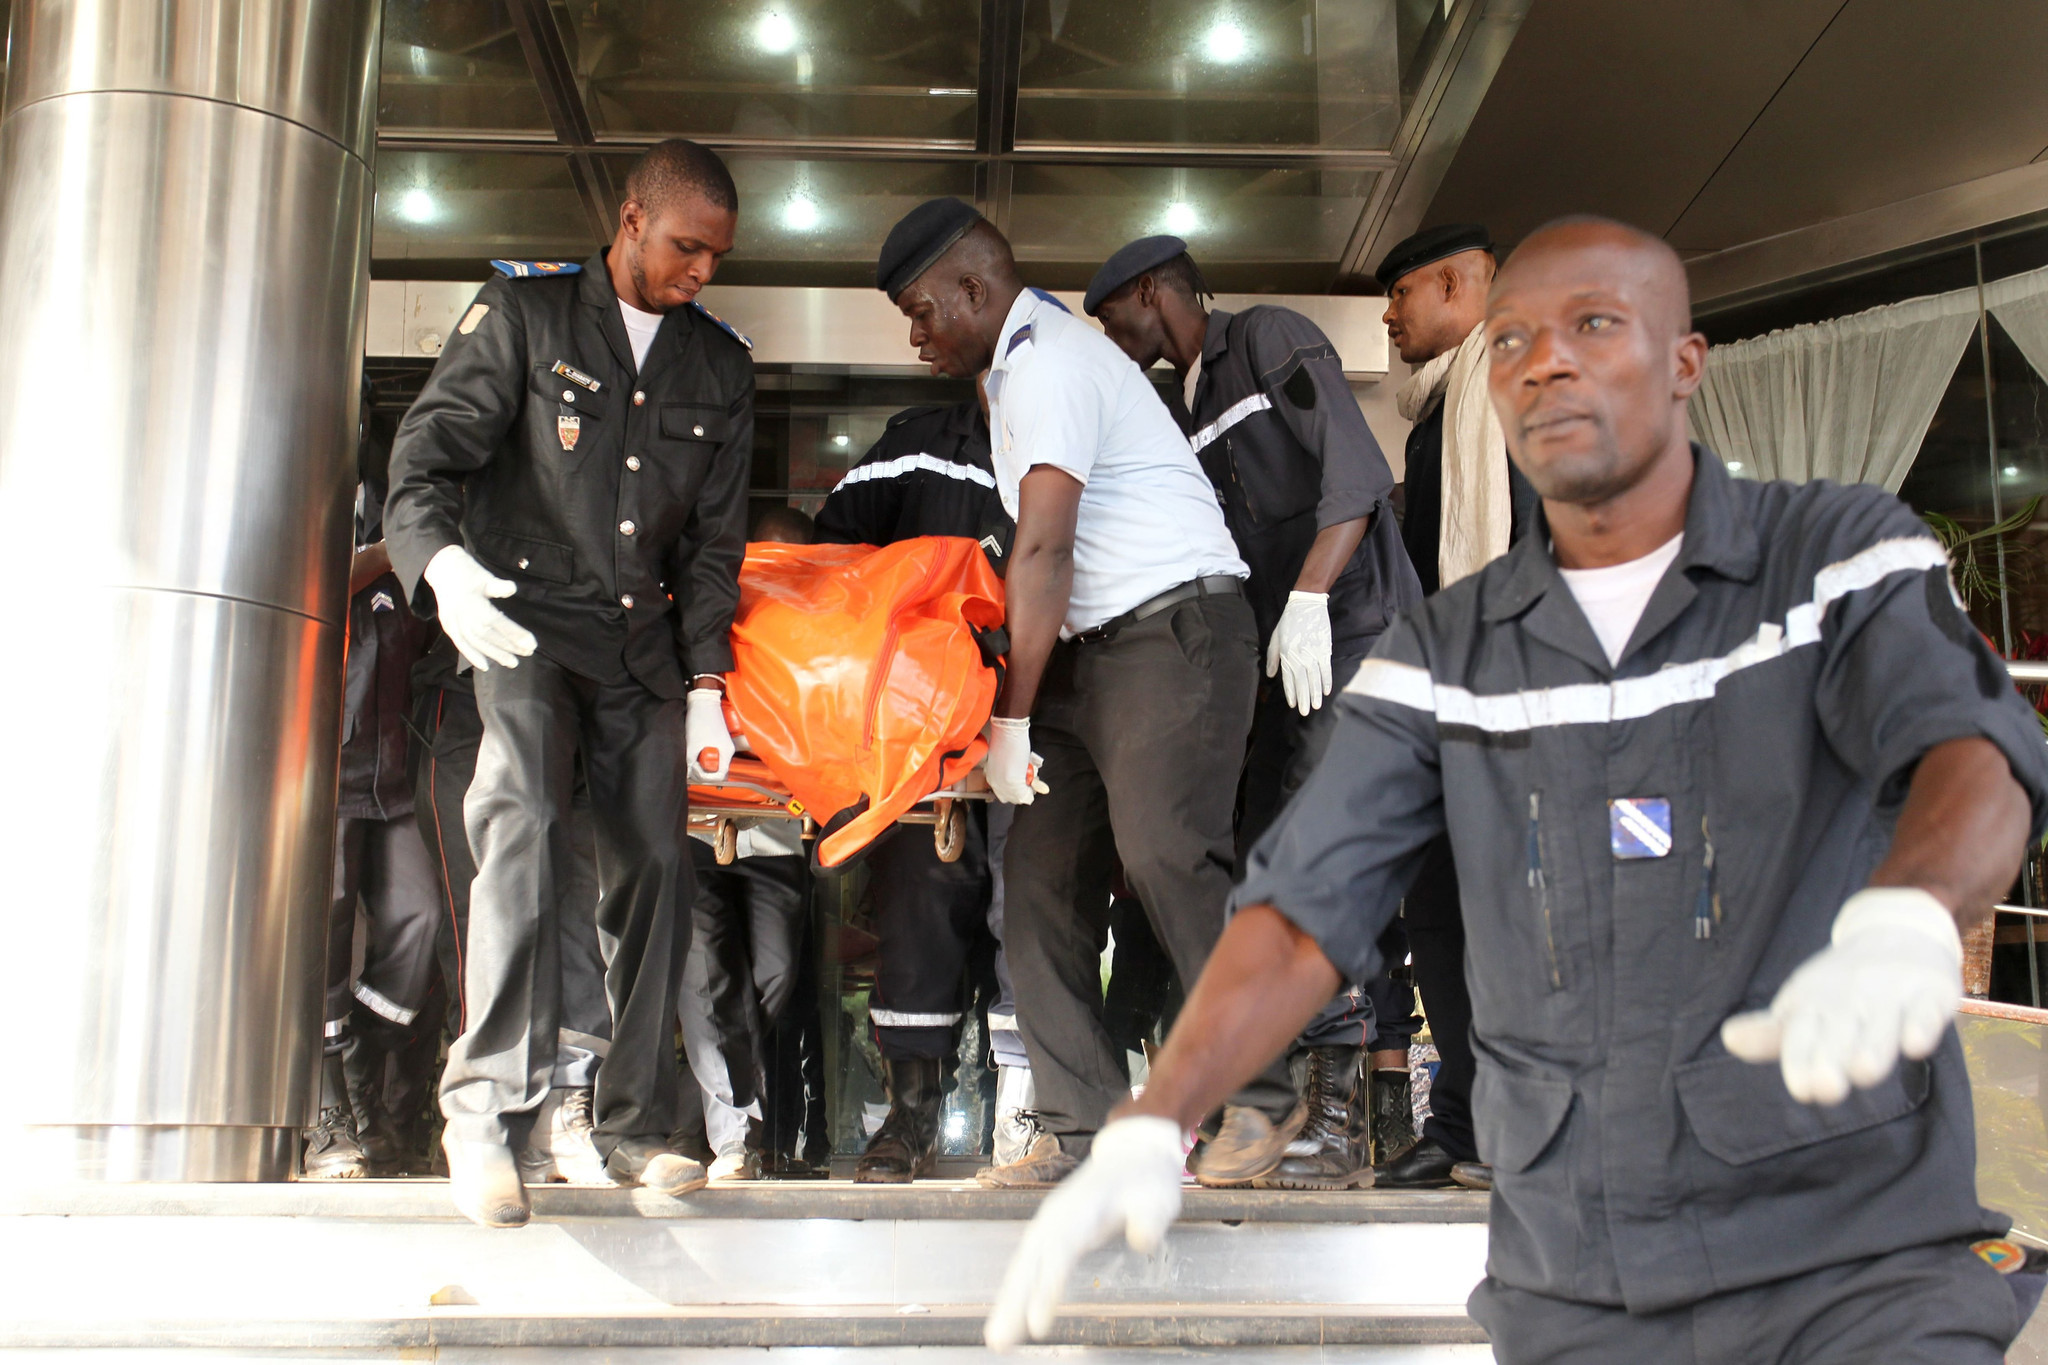 Guard: Mali hotel attackers took advantage of security lapses during shift change